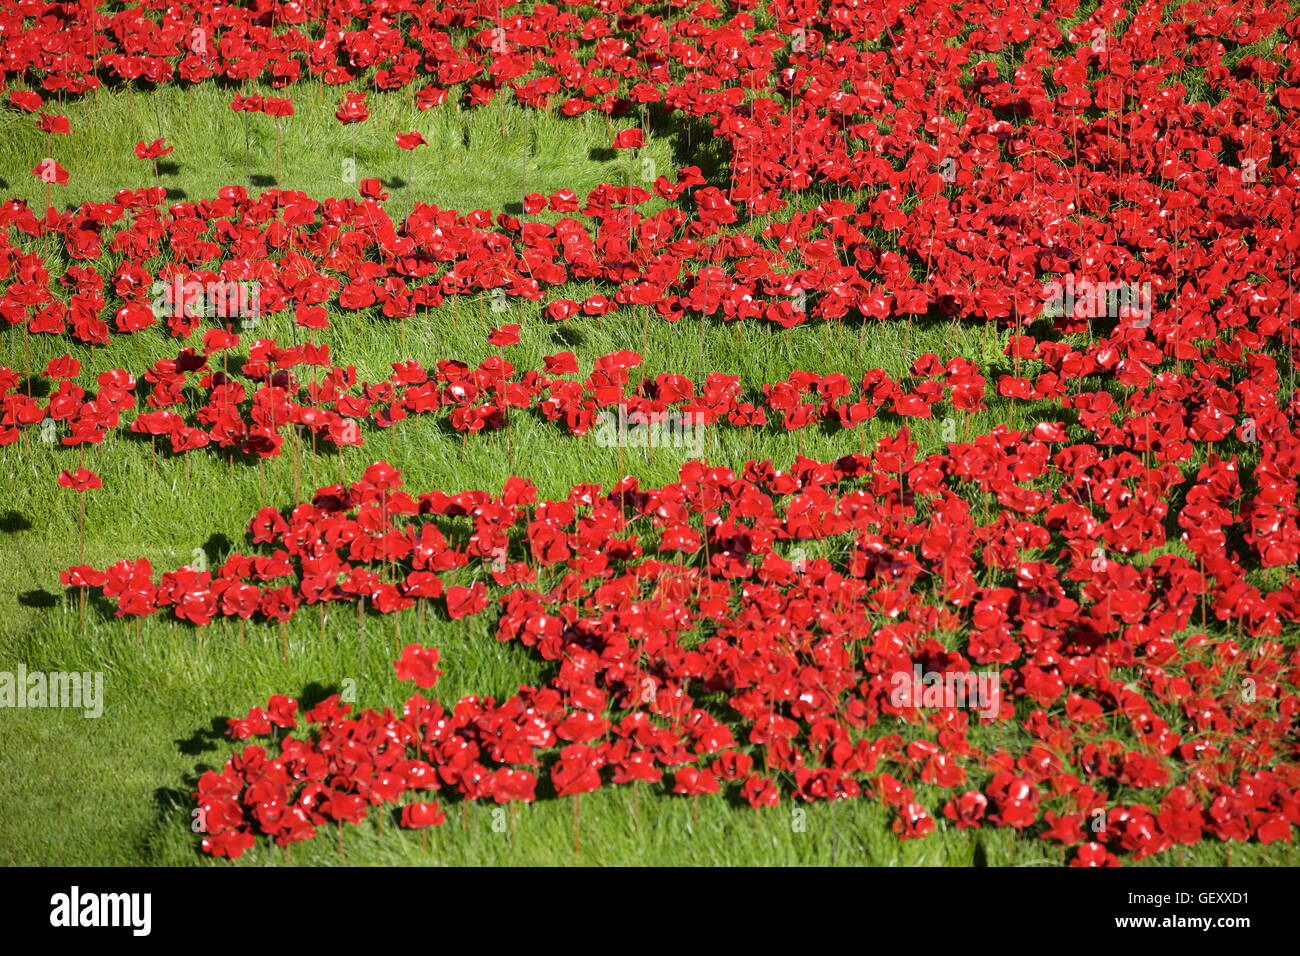 Blood Swept Lands and Seas of Red installation at the Tower of London marking 100 years since the 1st World War. Stock Photo